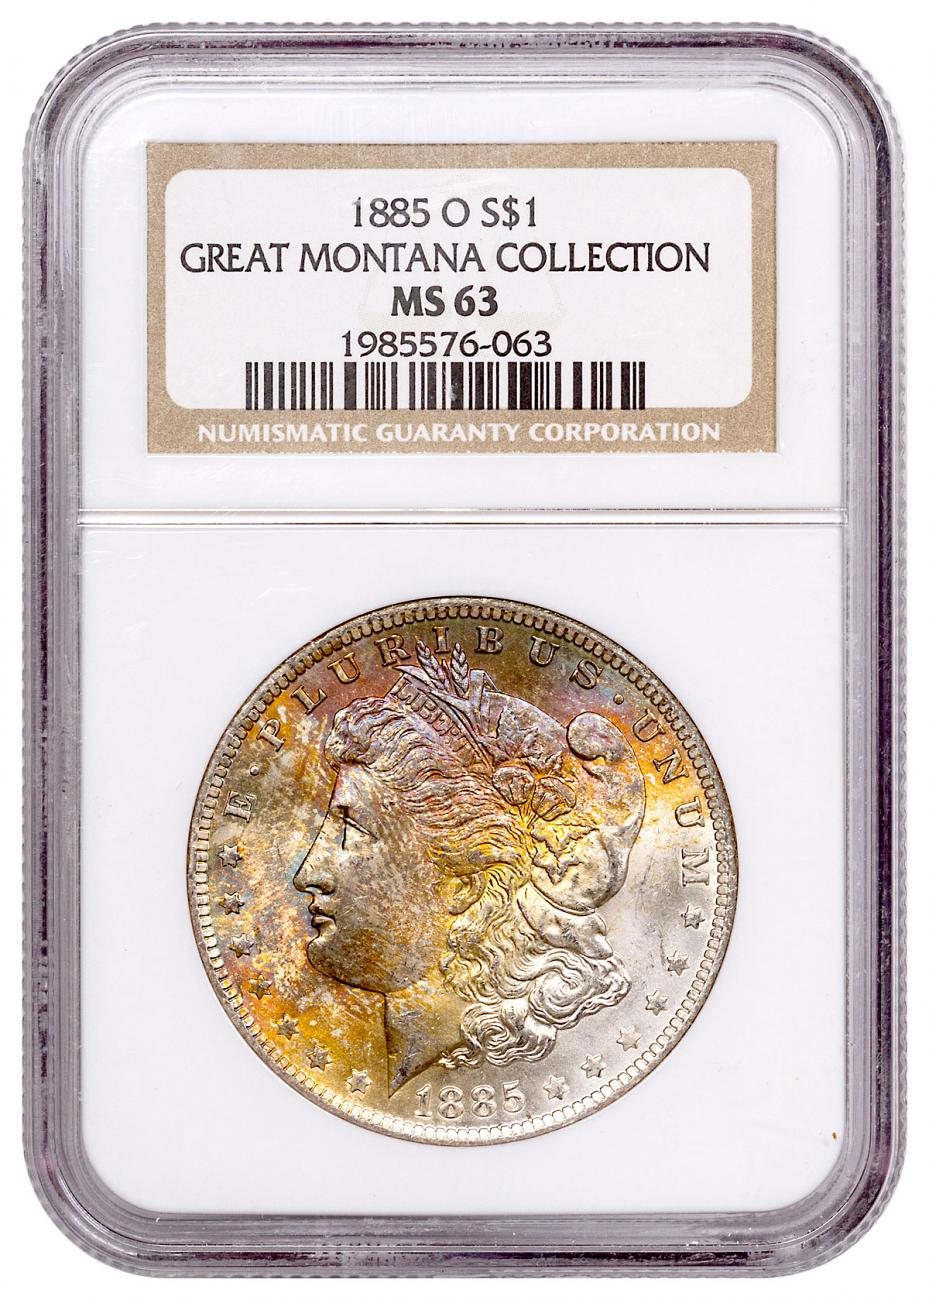 1885-O Morgan Silver Dollar From the Great Montana Collection NGC MS63 Toned CPCR 6063